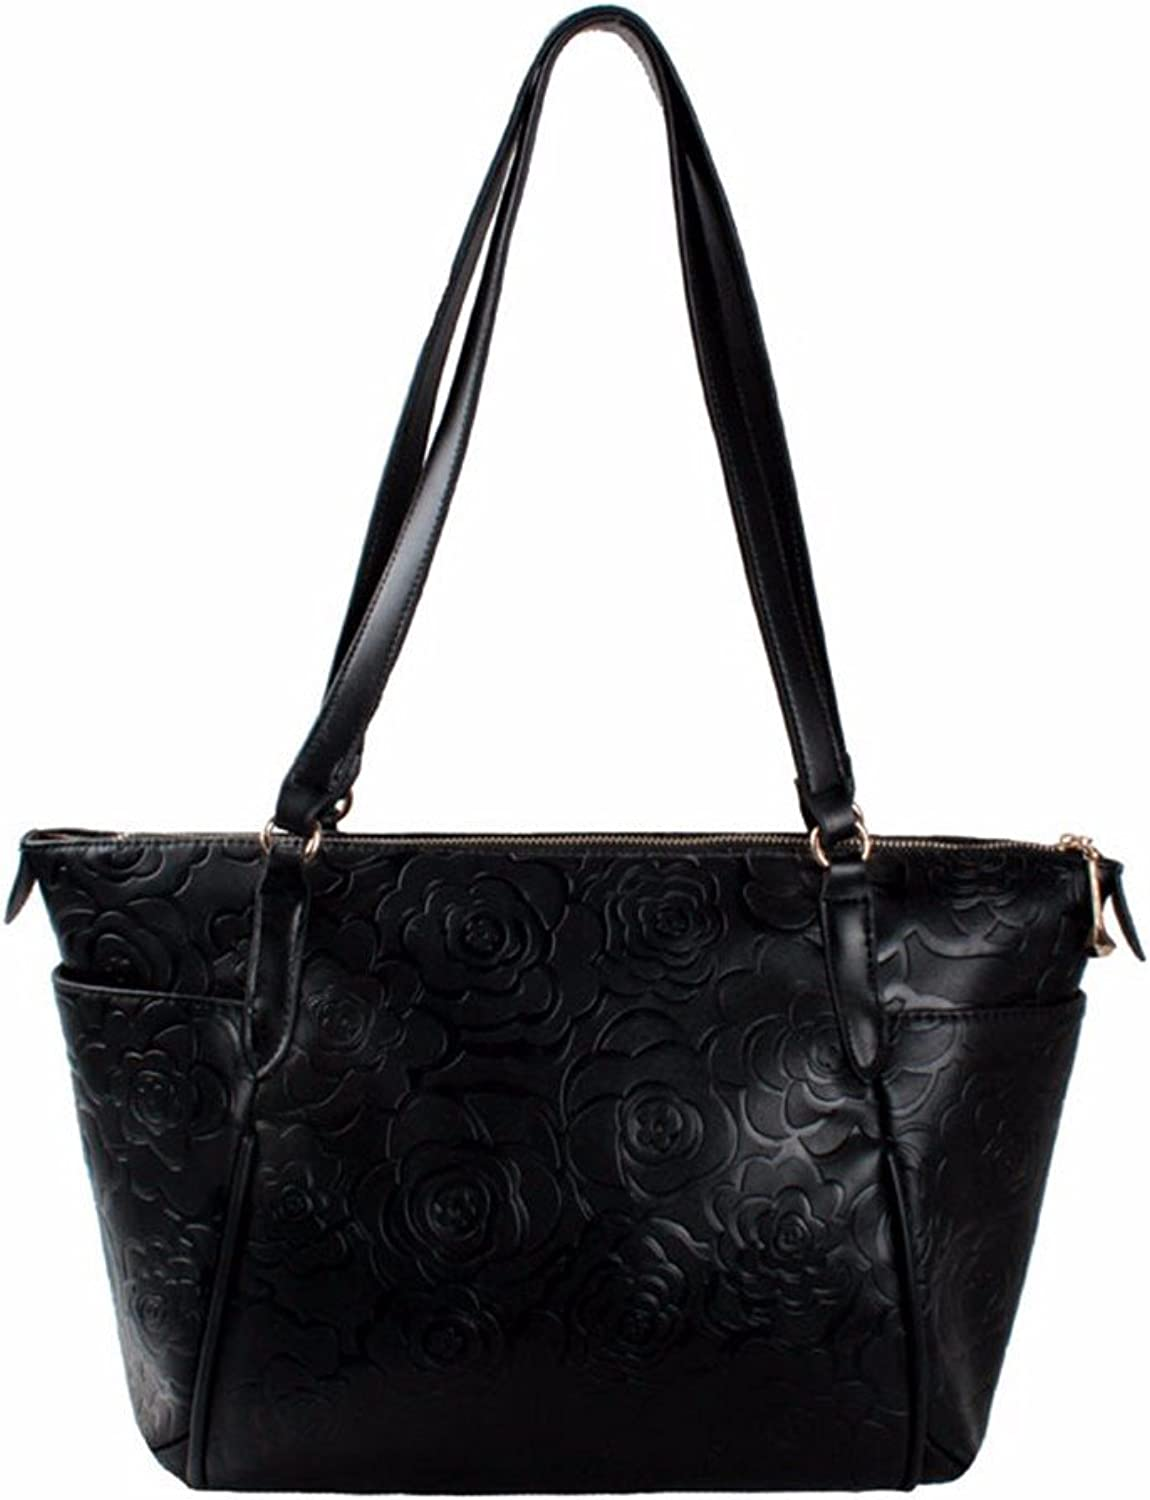 GAOQIANGFENG Mode - Lady ist Print - Handtasche Handtasche Handtasche B07F5DH5JL  Neuer Markt 21cdee